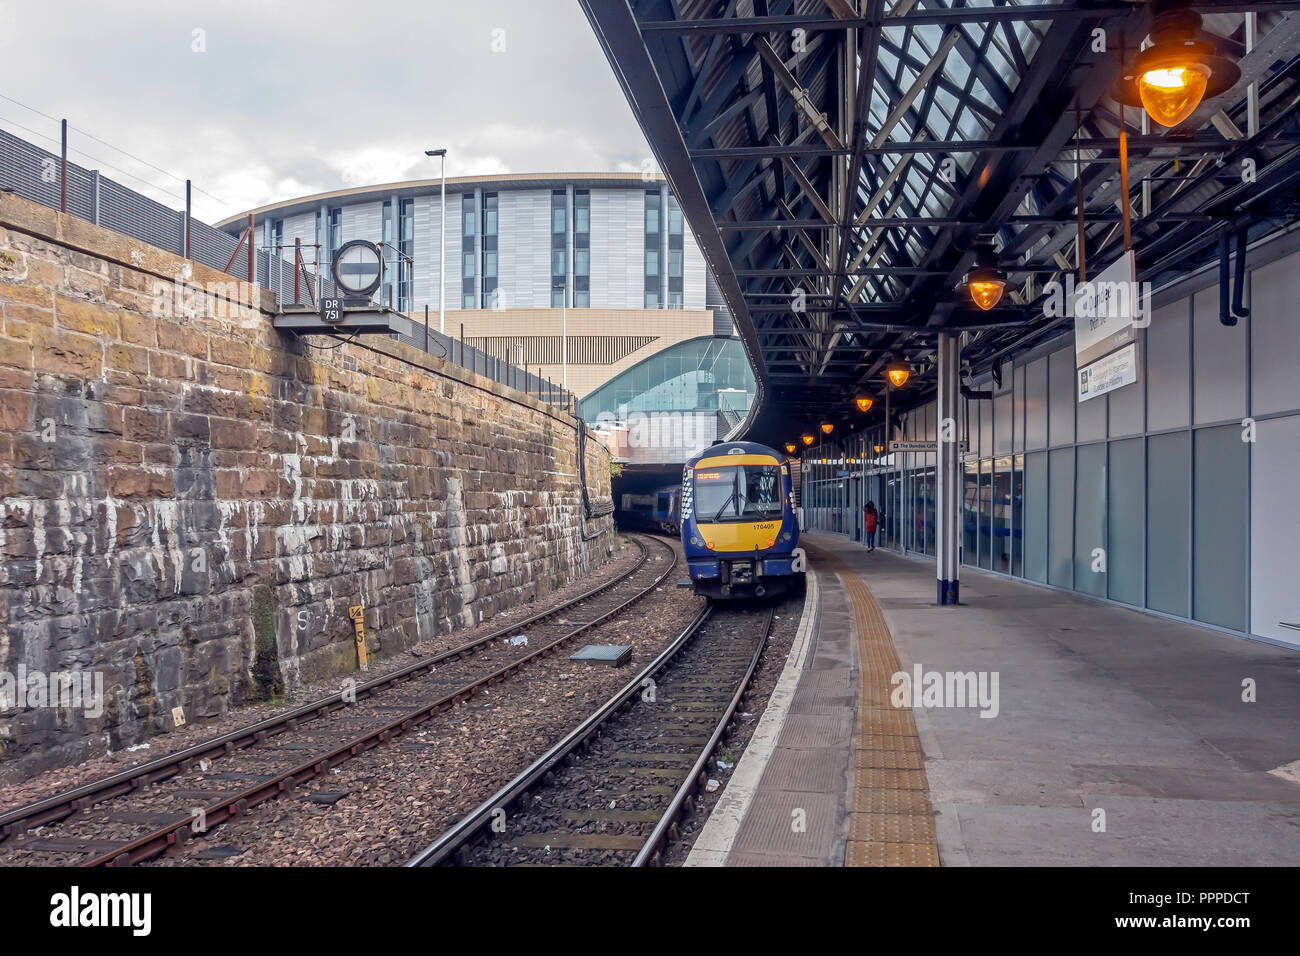 Sleeperz Hotel Dundee above Dundee Railwlay Station in South Union Street Dundee Scotland UK with train departing for Aberdeen - Stock Image